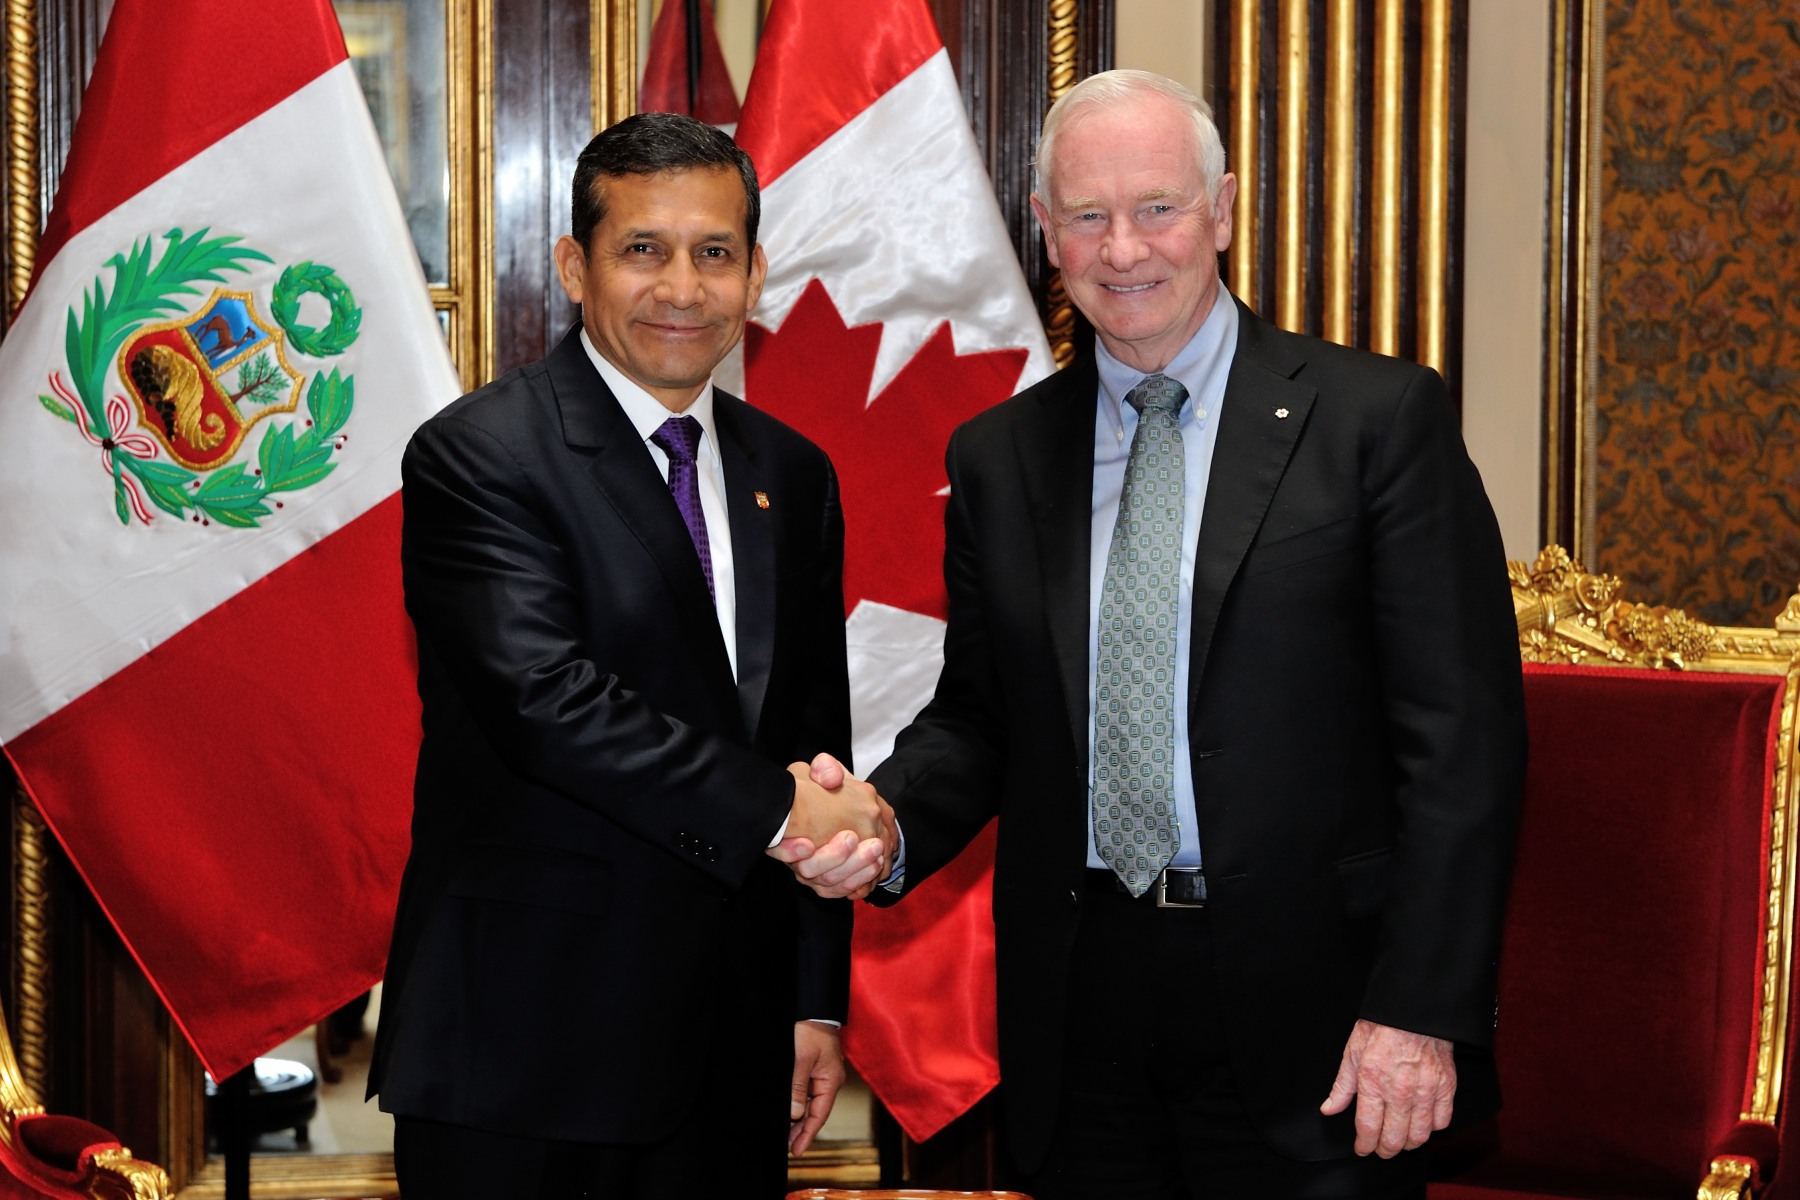 Official meeting between His Excellency and the President of the Republic of Peru.